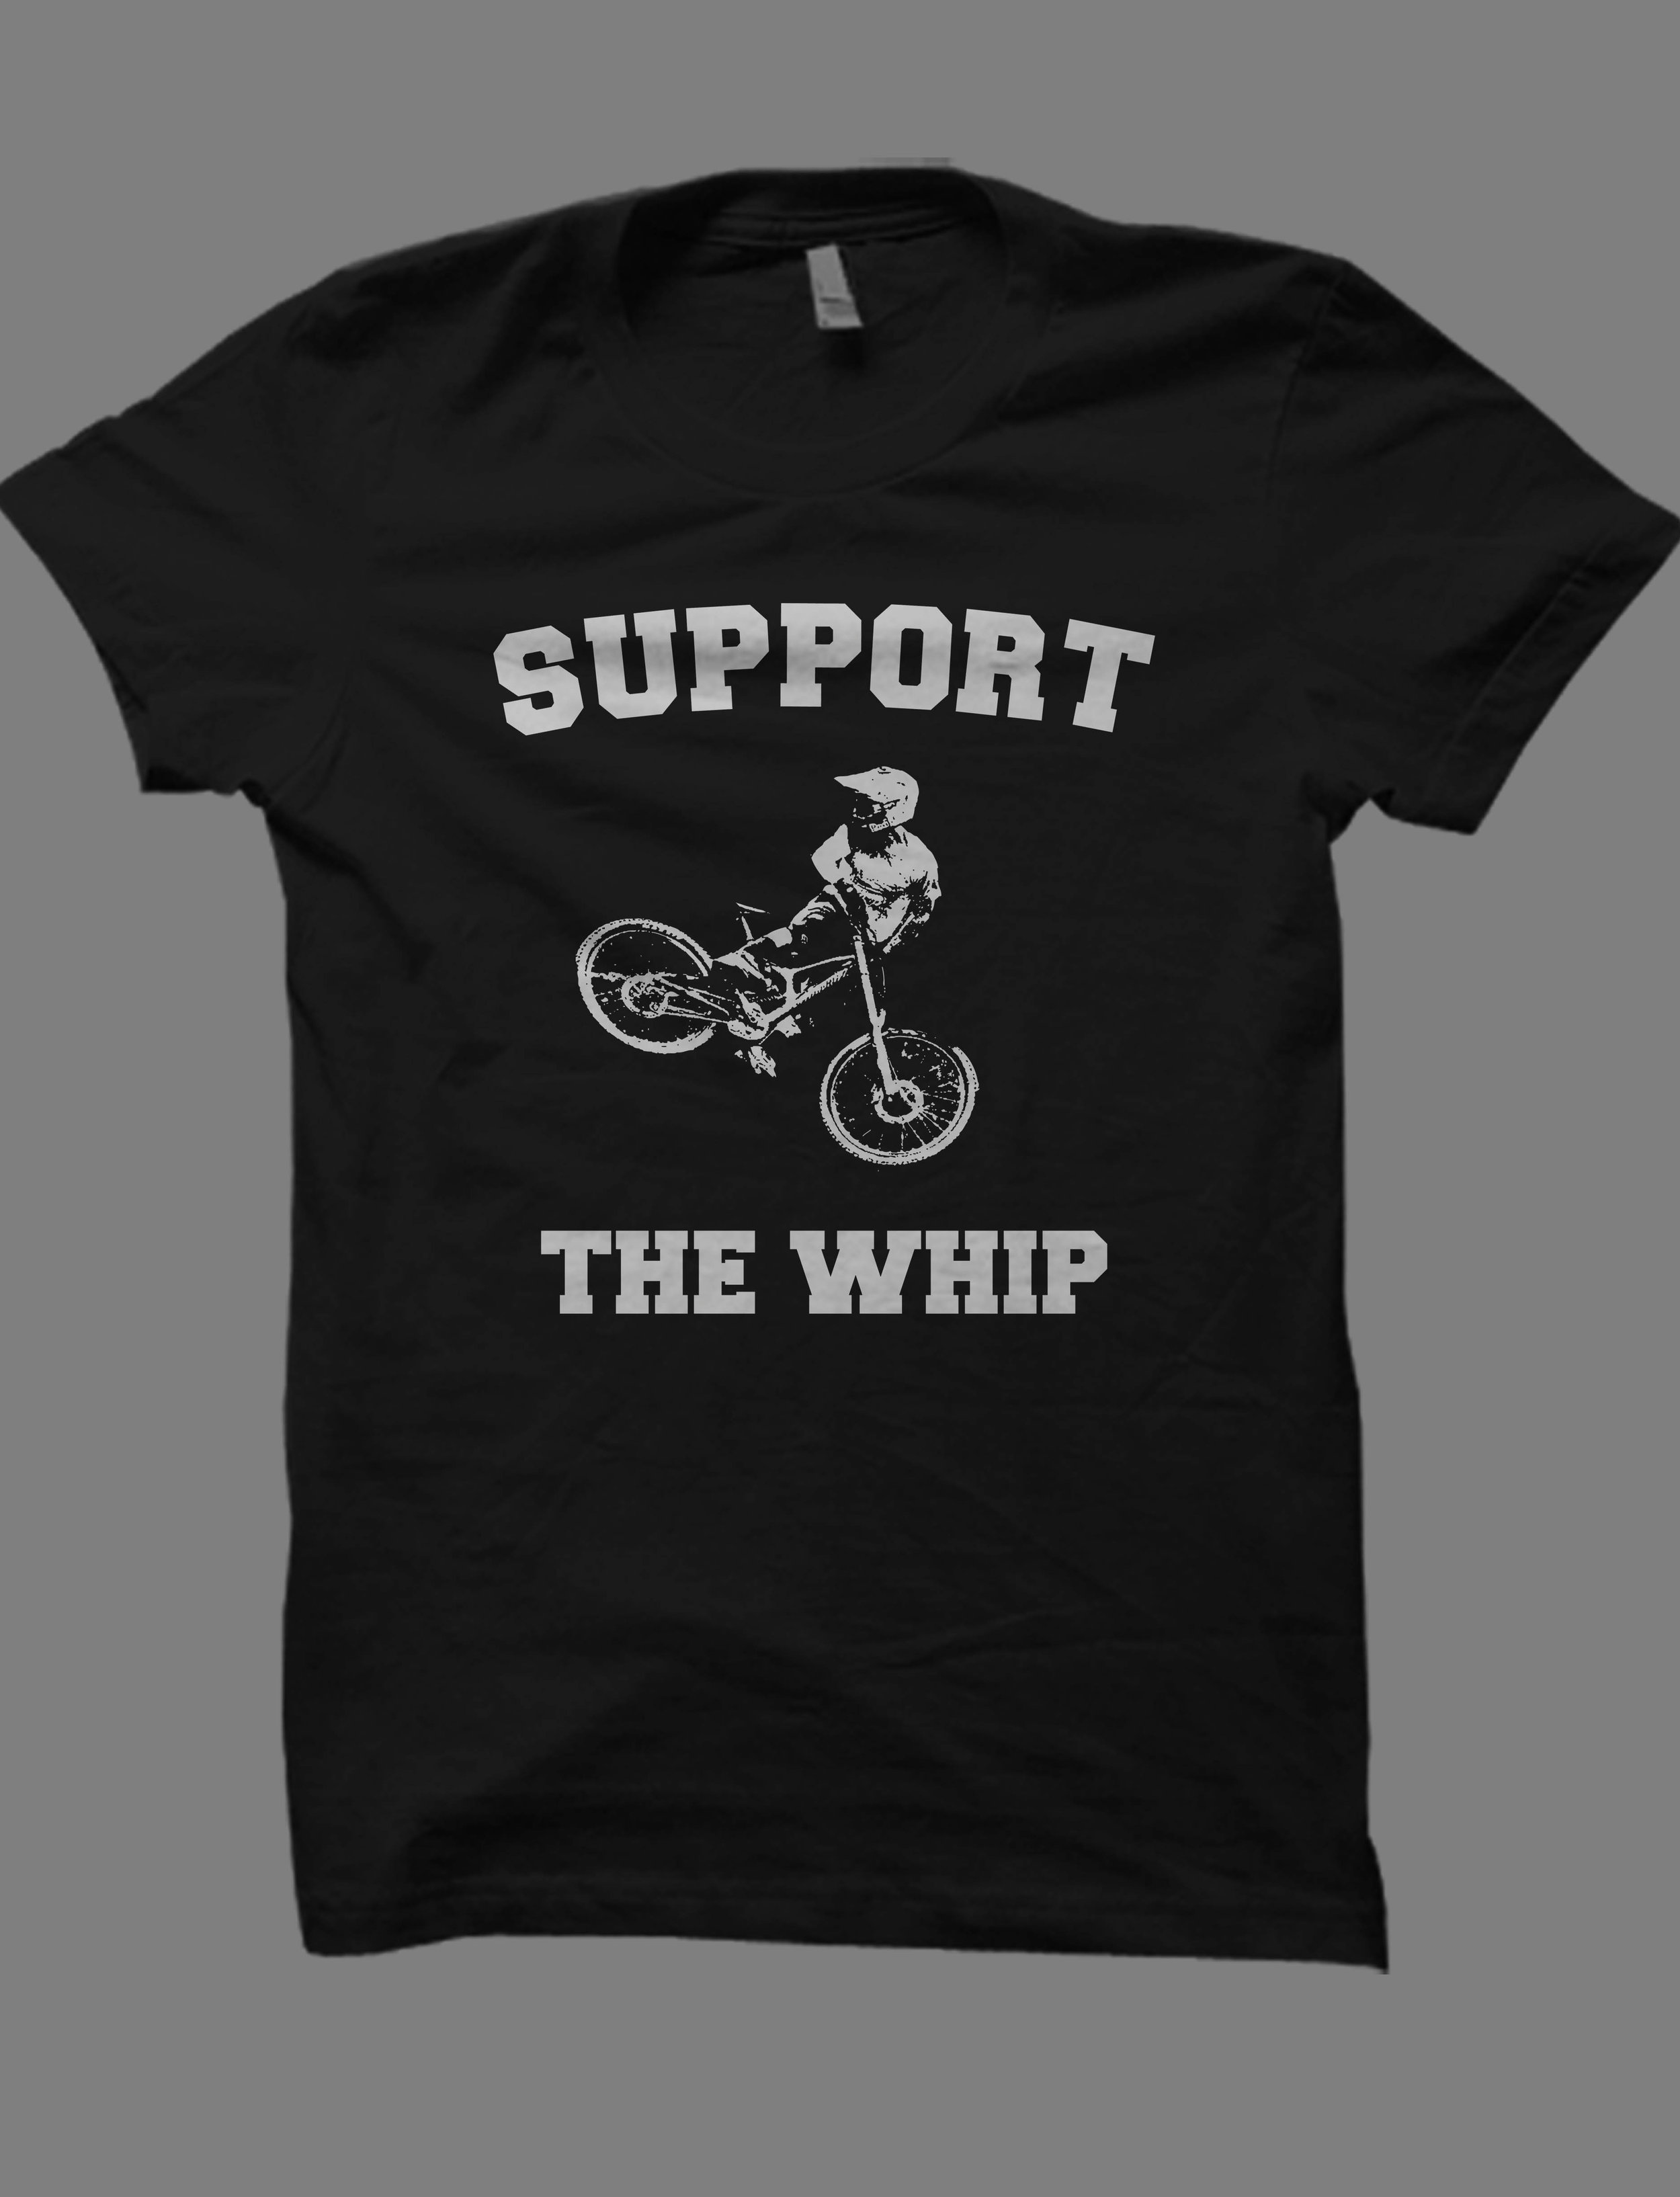 Support_The_Whip.jpg